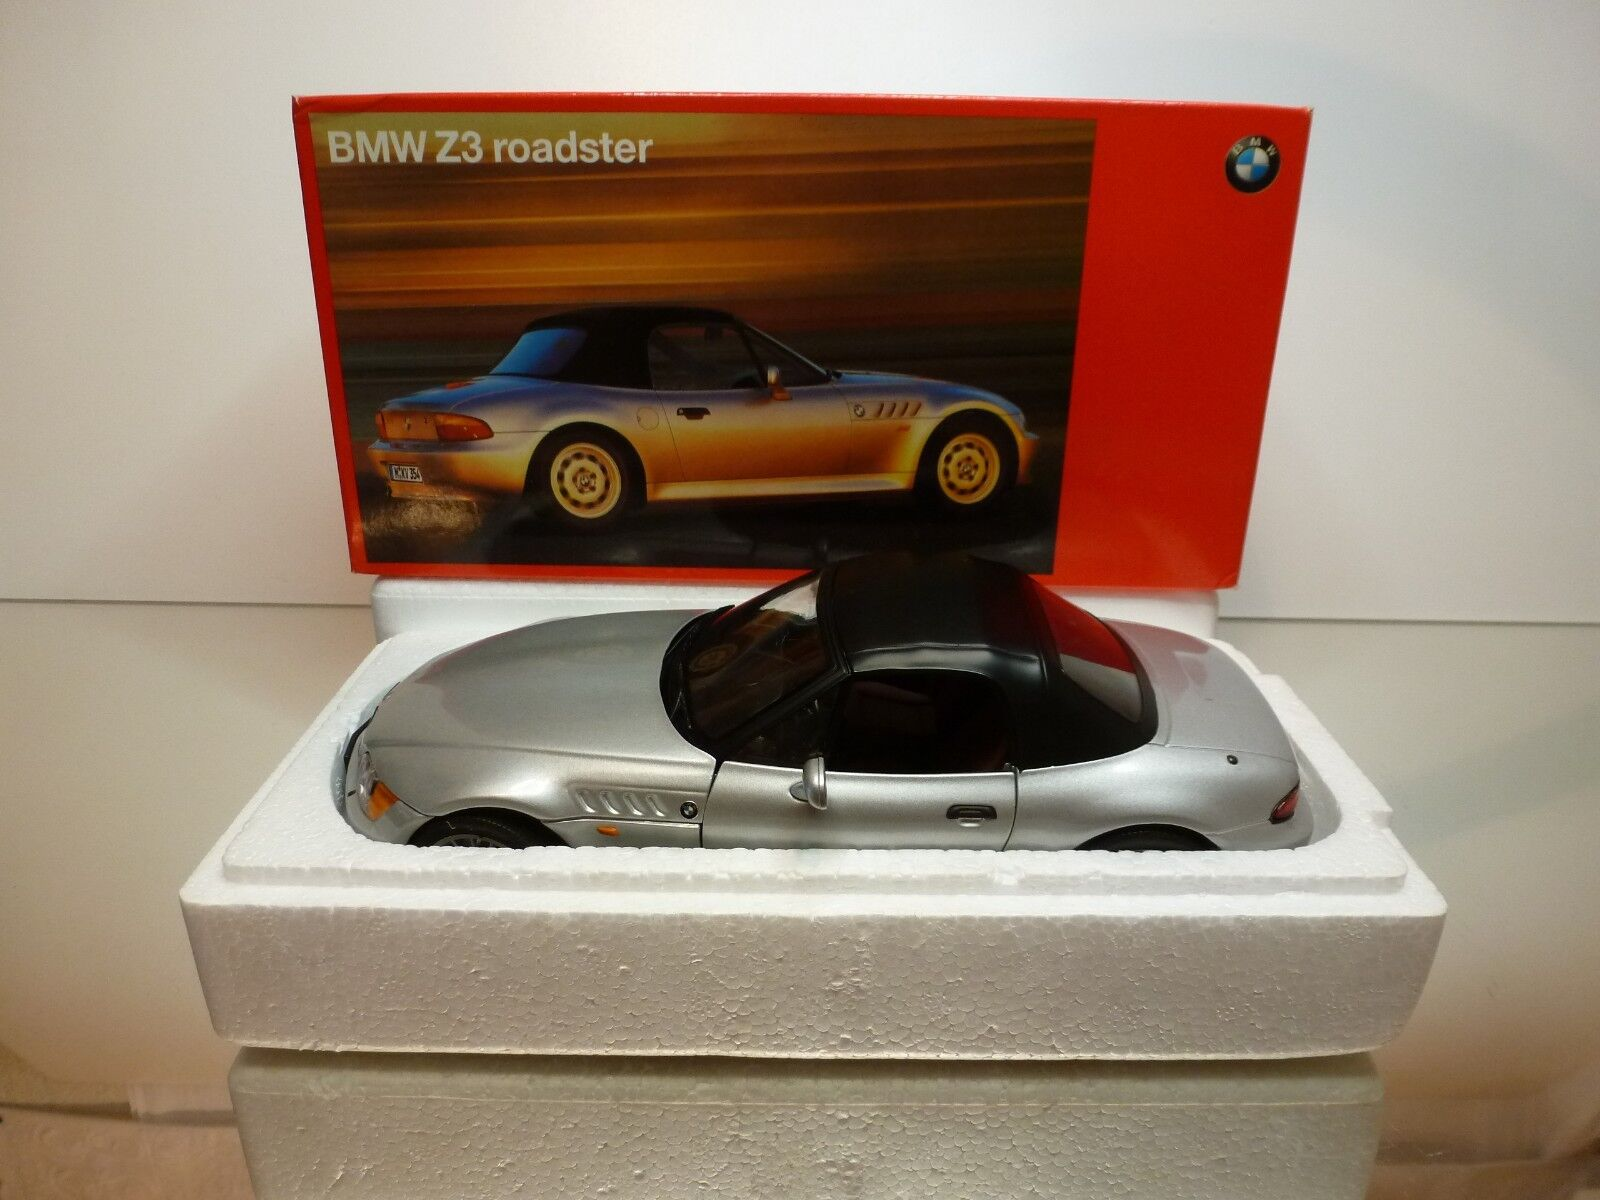 UT MODELS BMW Z3 ROADSTER - SOFT TOP - METALLIC 1 18 - EXCELLENT IN BOX